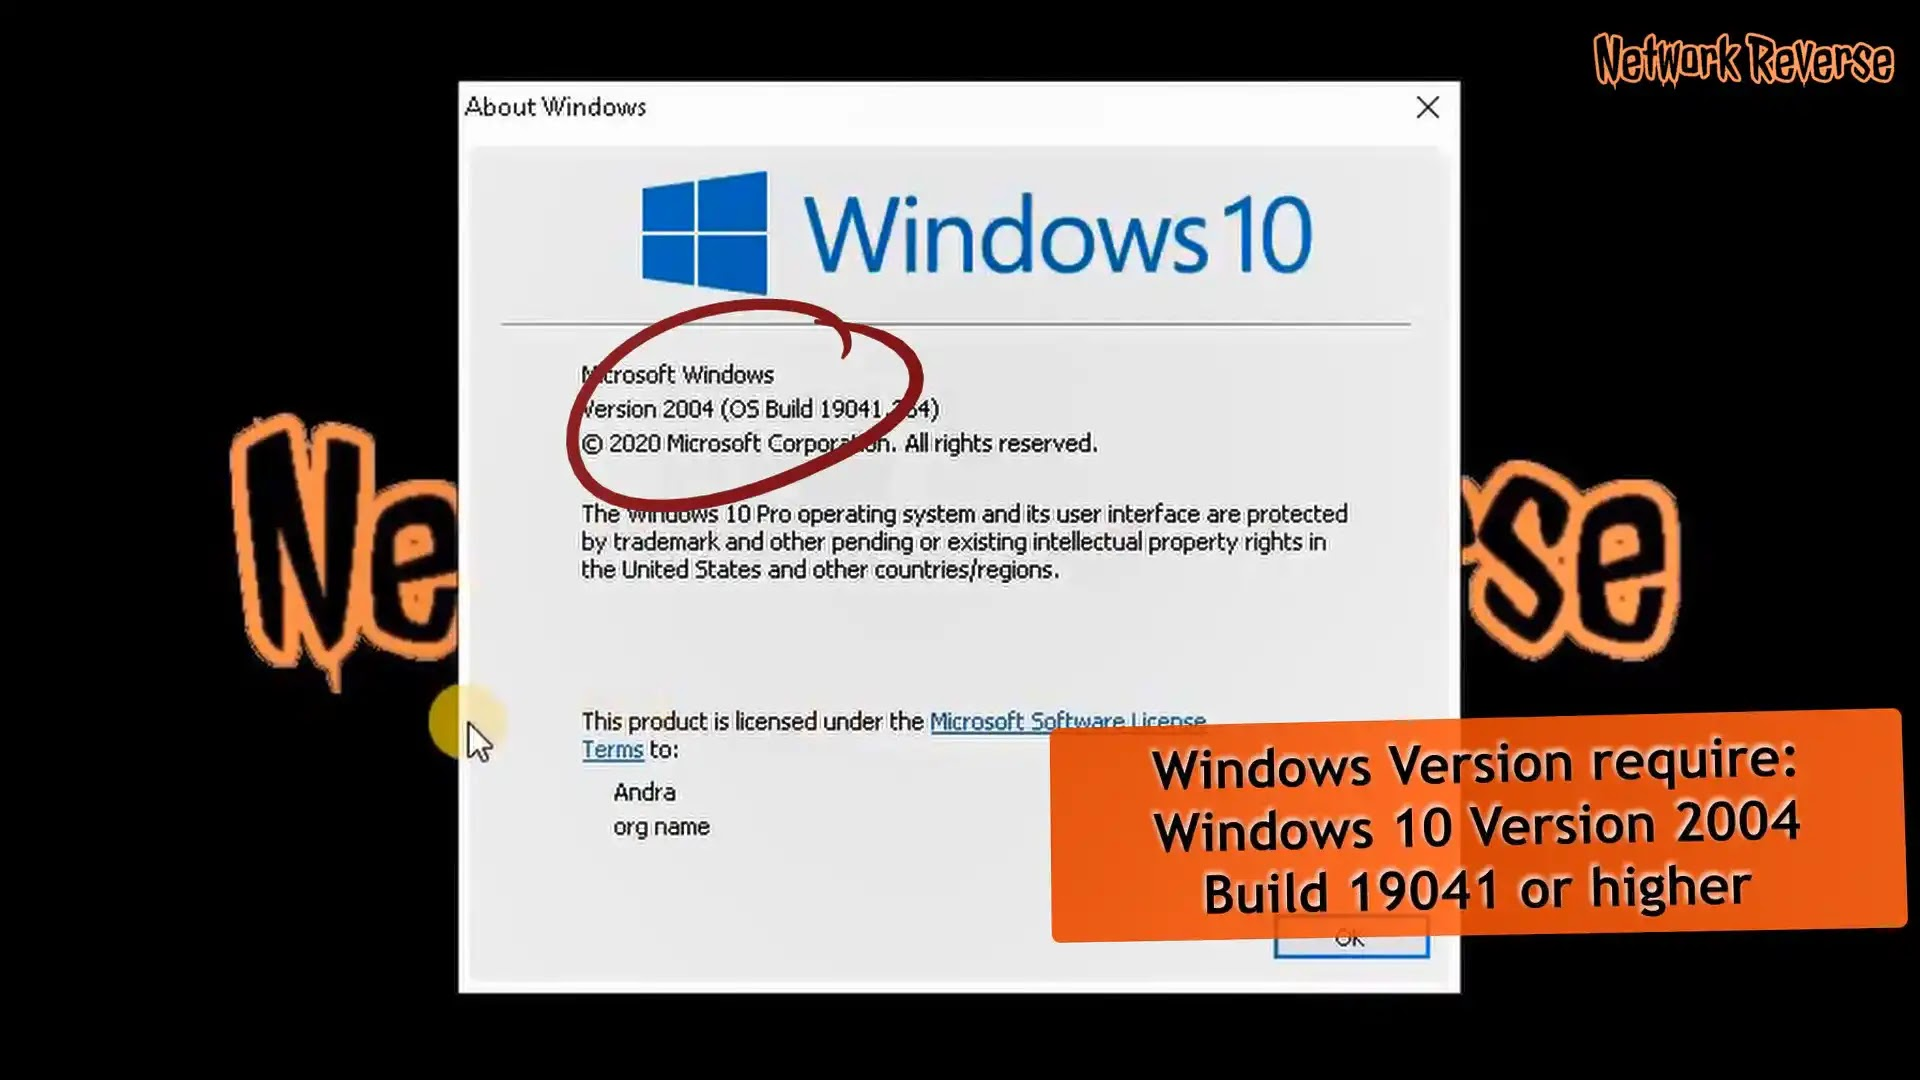 How to install Windows Subsystem for Linux 288 (WSL 288) on Windows 28